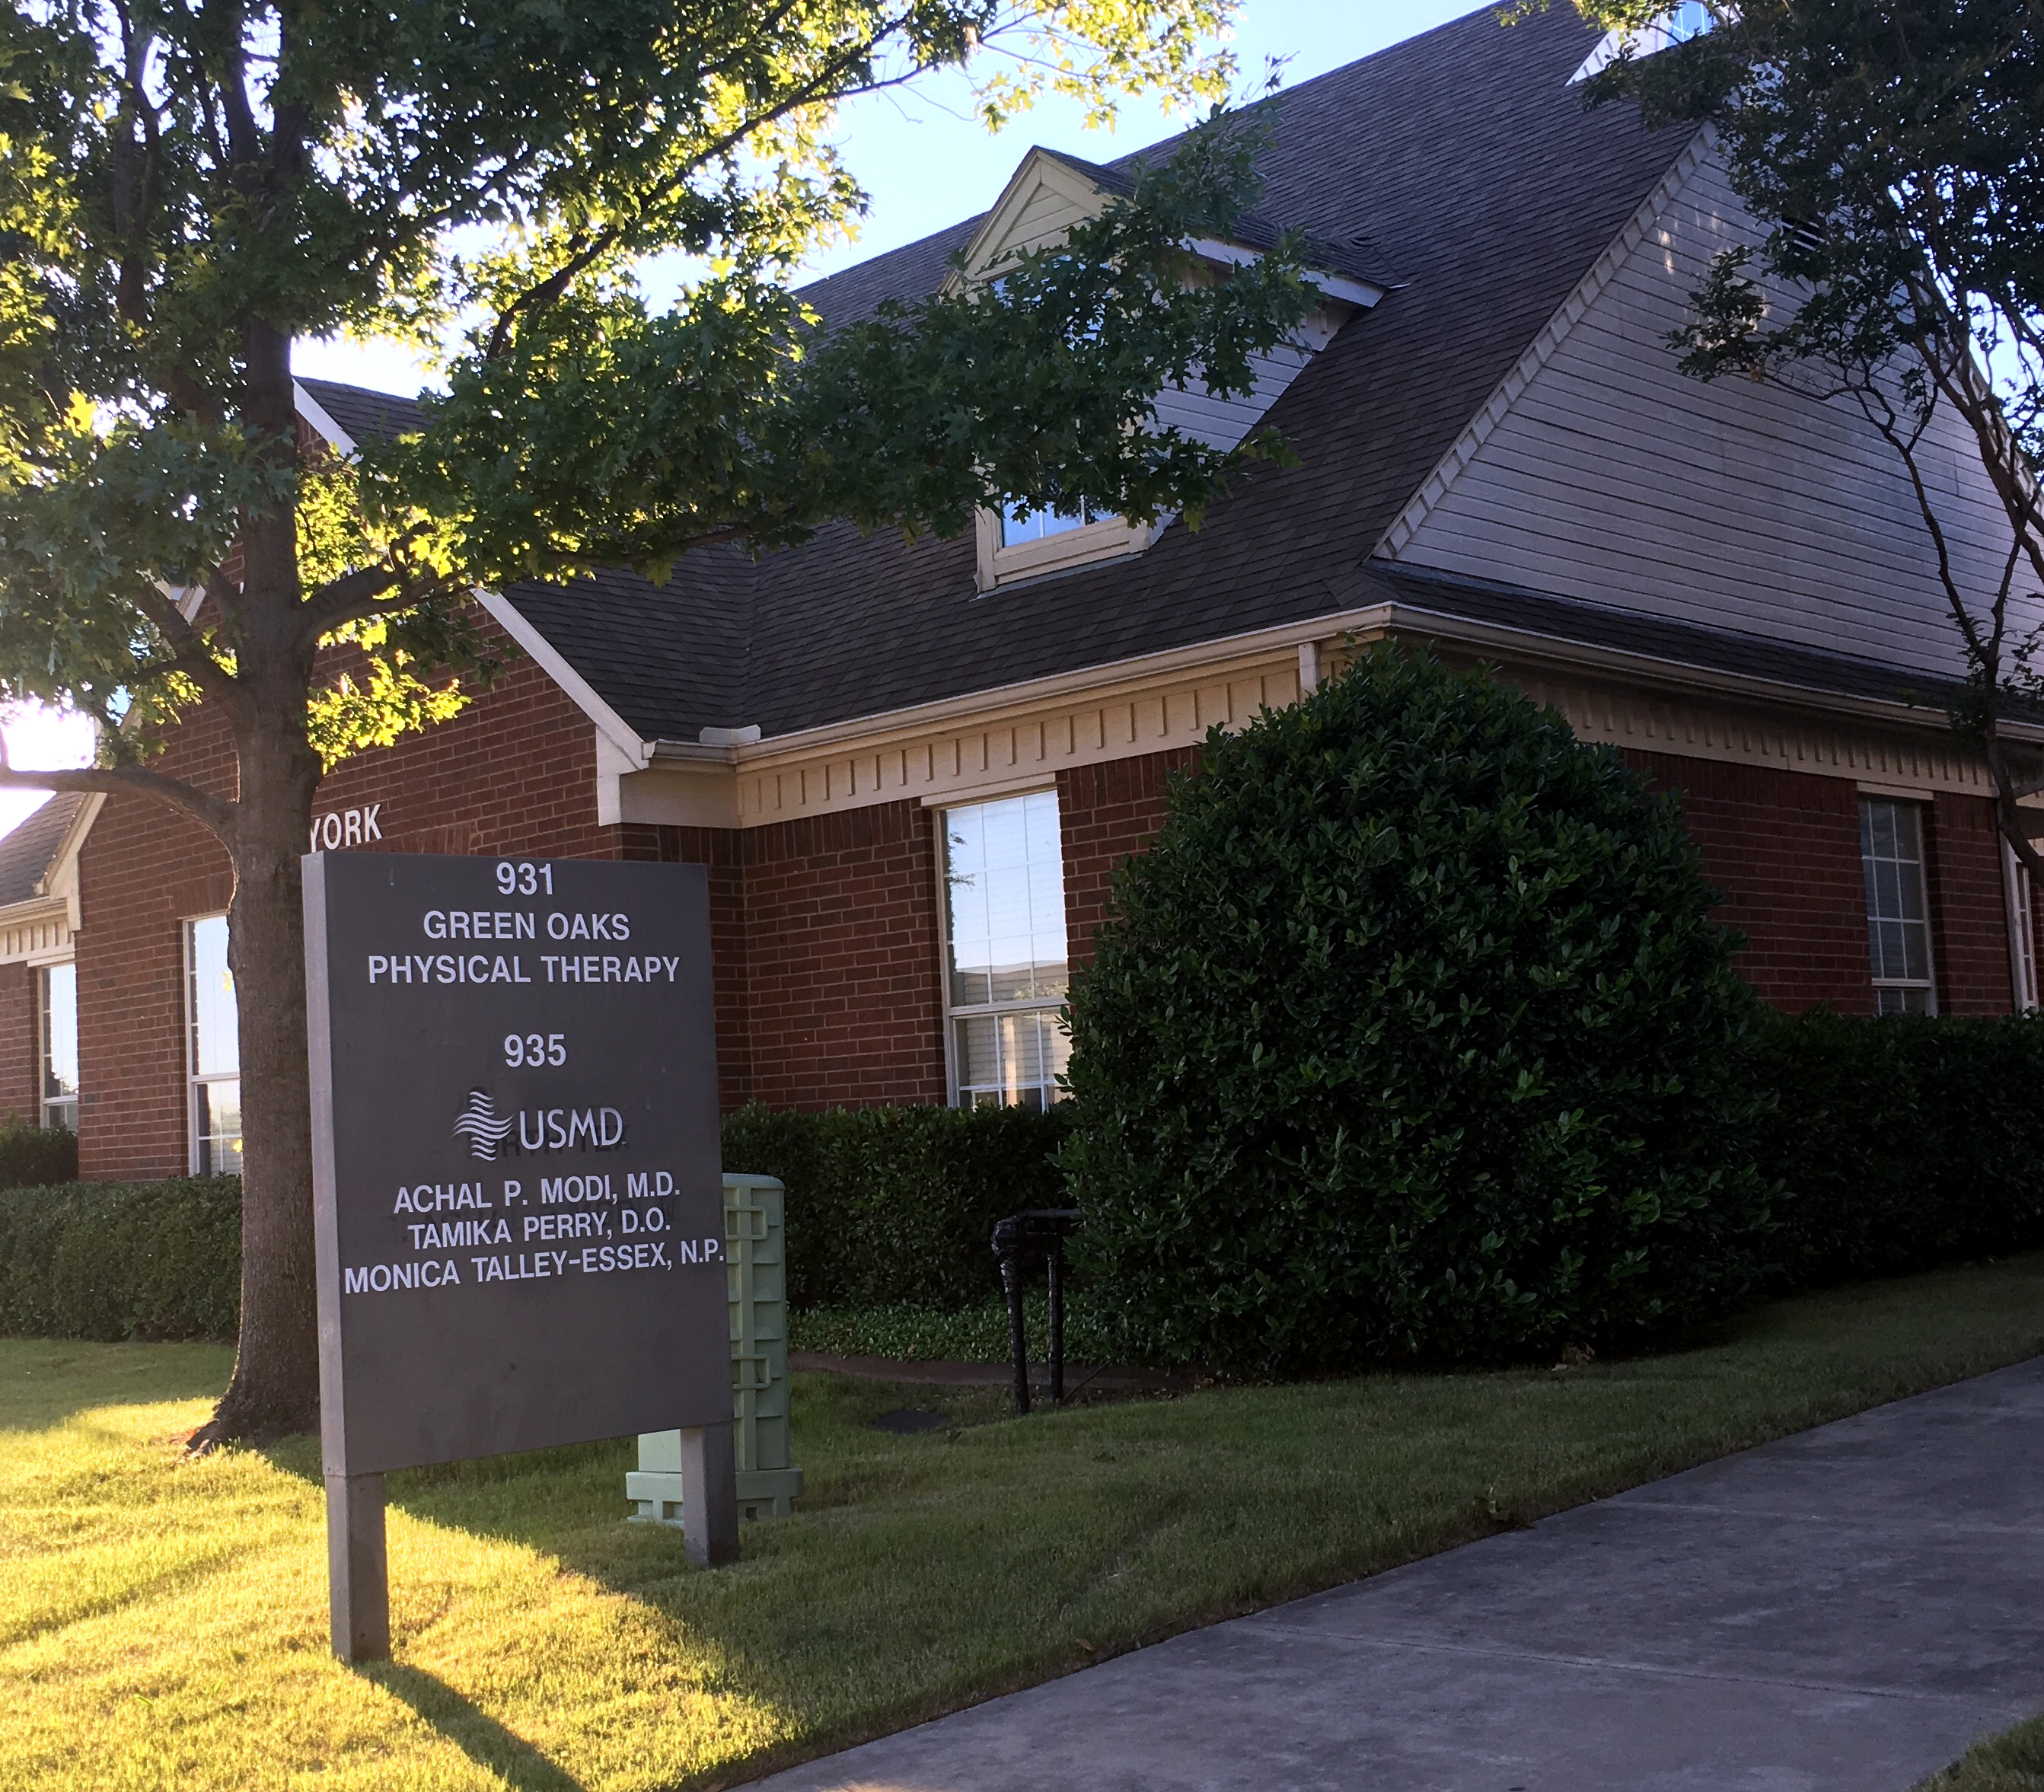 Green Oaks Physical Therapy